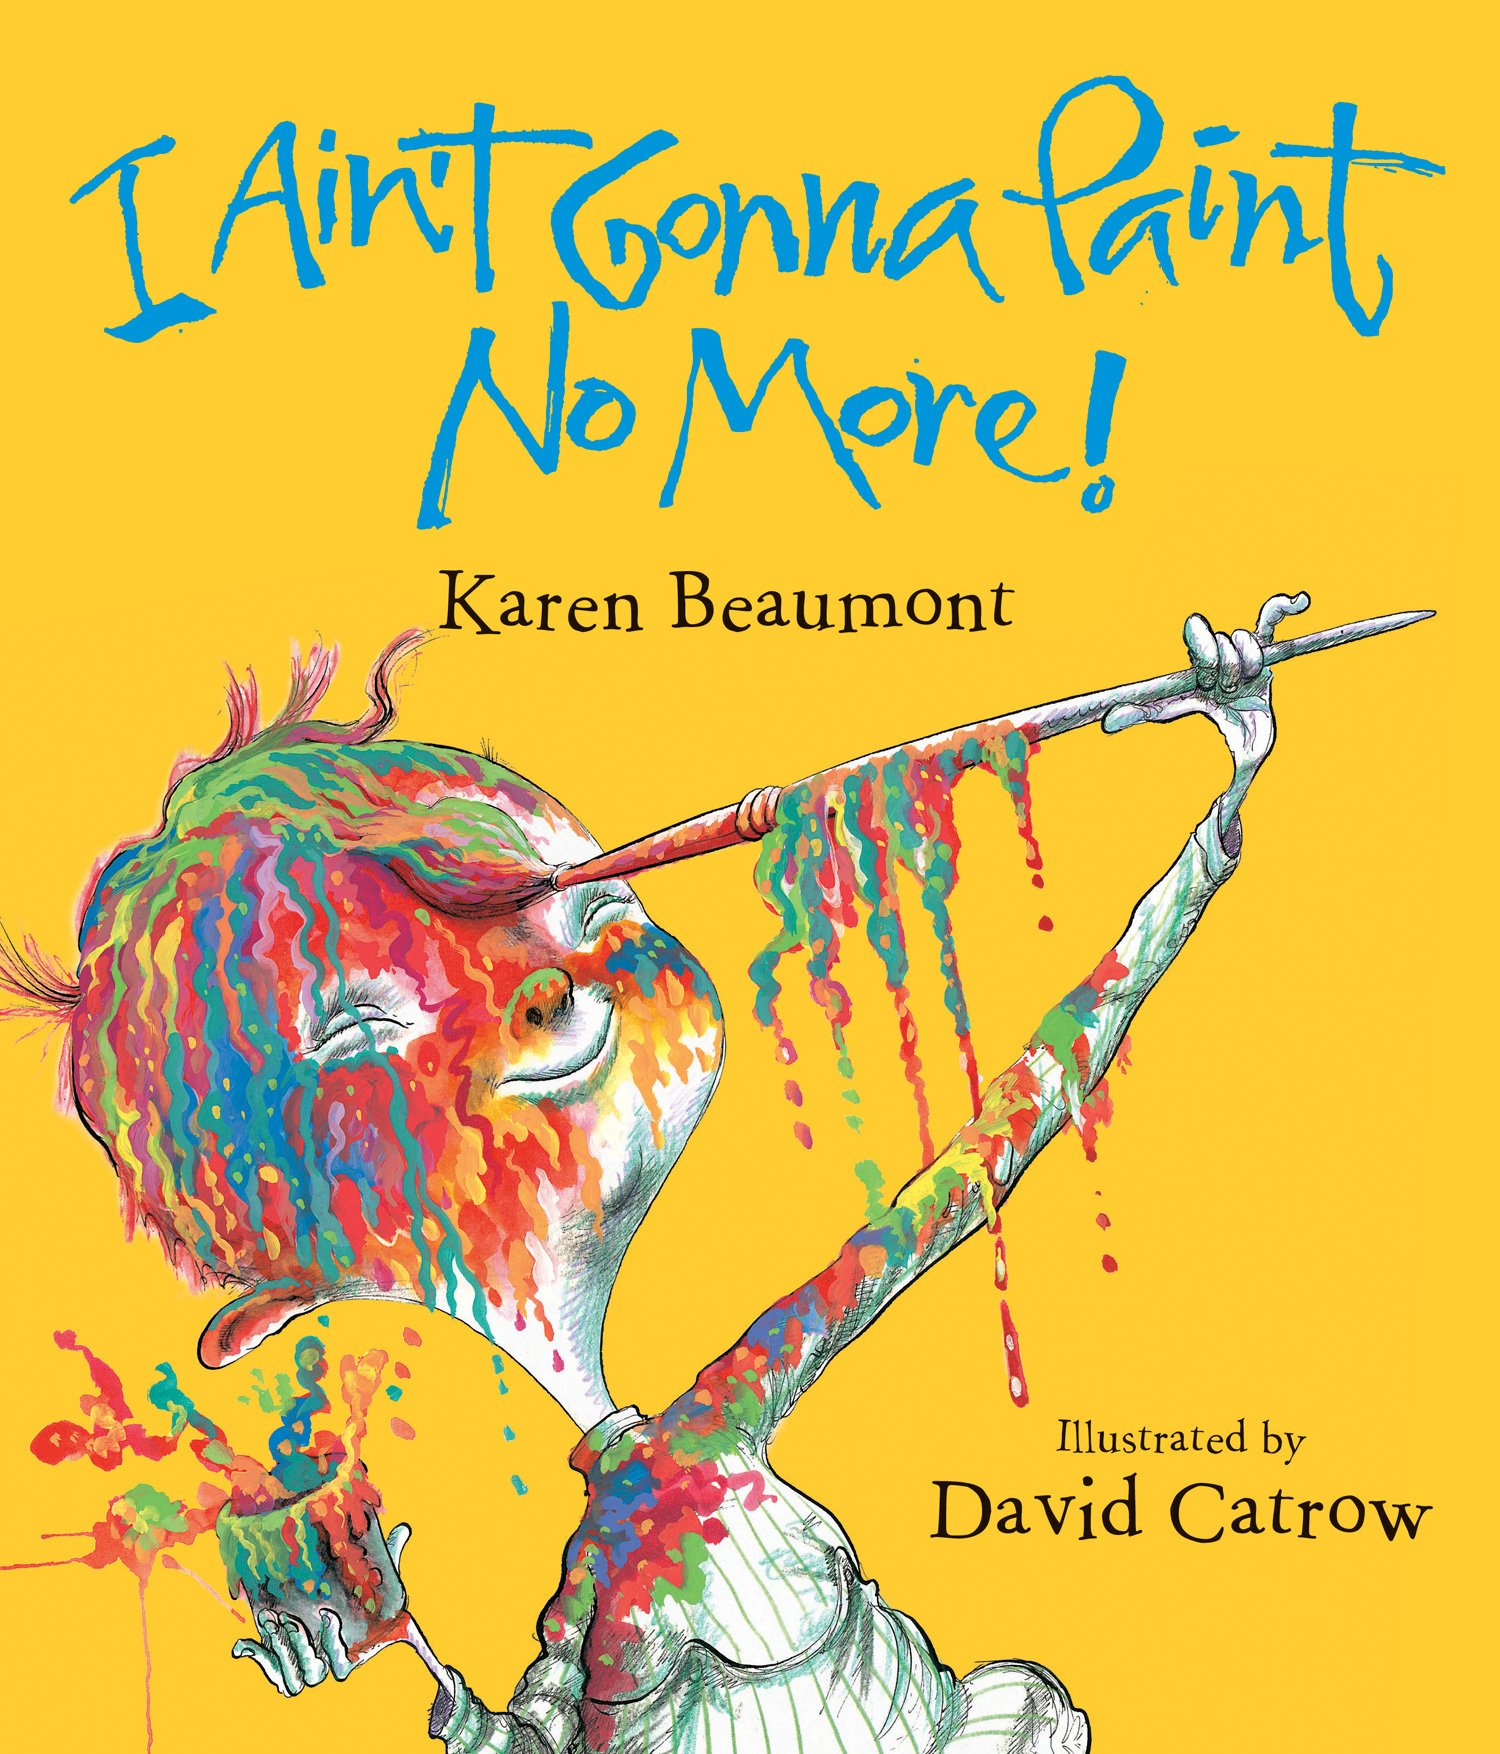 I Ain't Gonna Paint No More! by Karen Beaumont and David Catrow